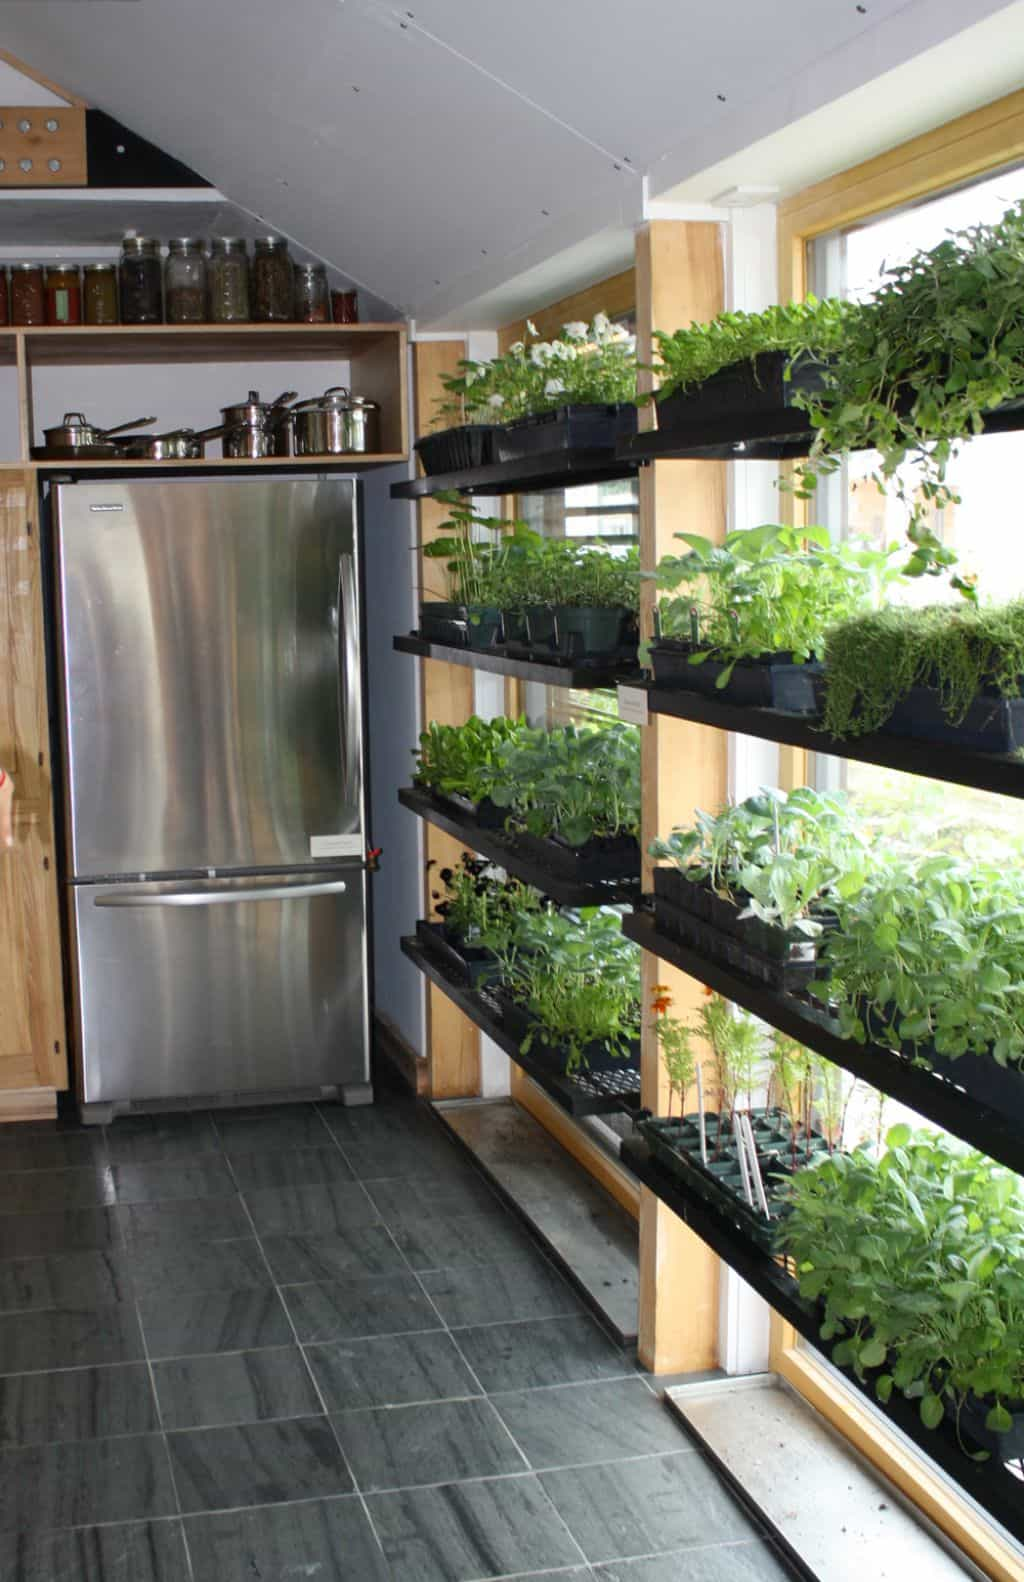 kitchen-with-refrigerator-andoor-herb-garden-gardener-magazine-templeton-ma-in-malaysia-planter-contemporary-designs